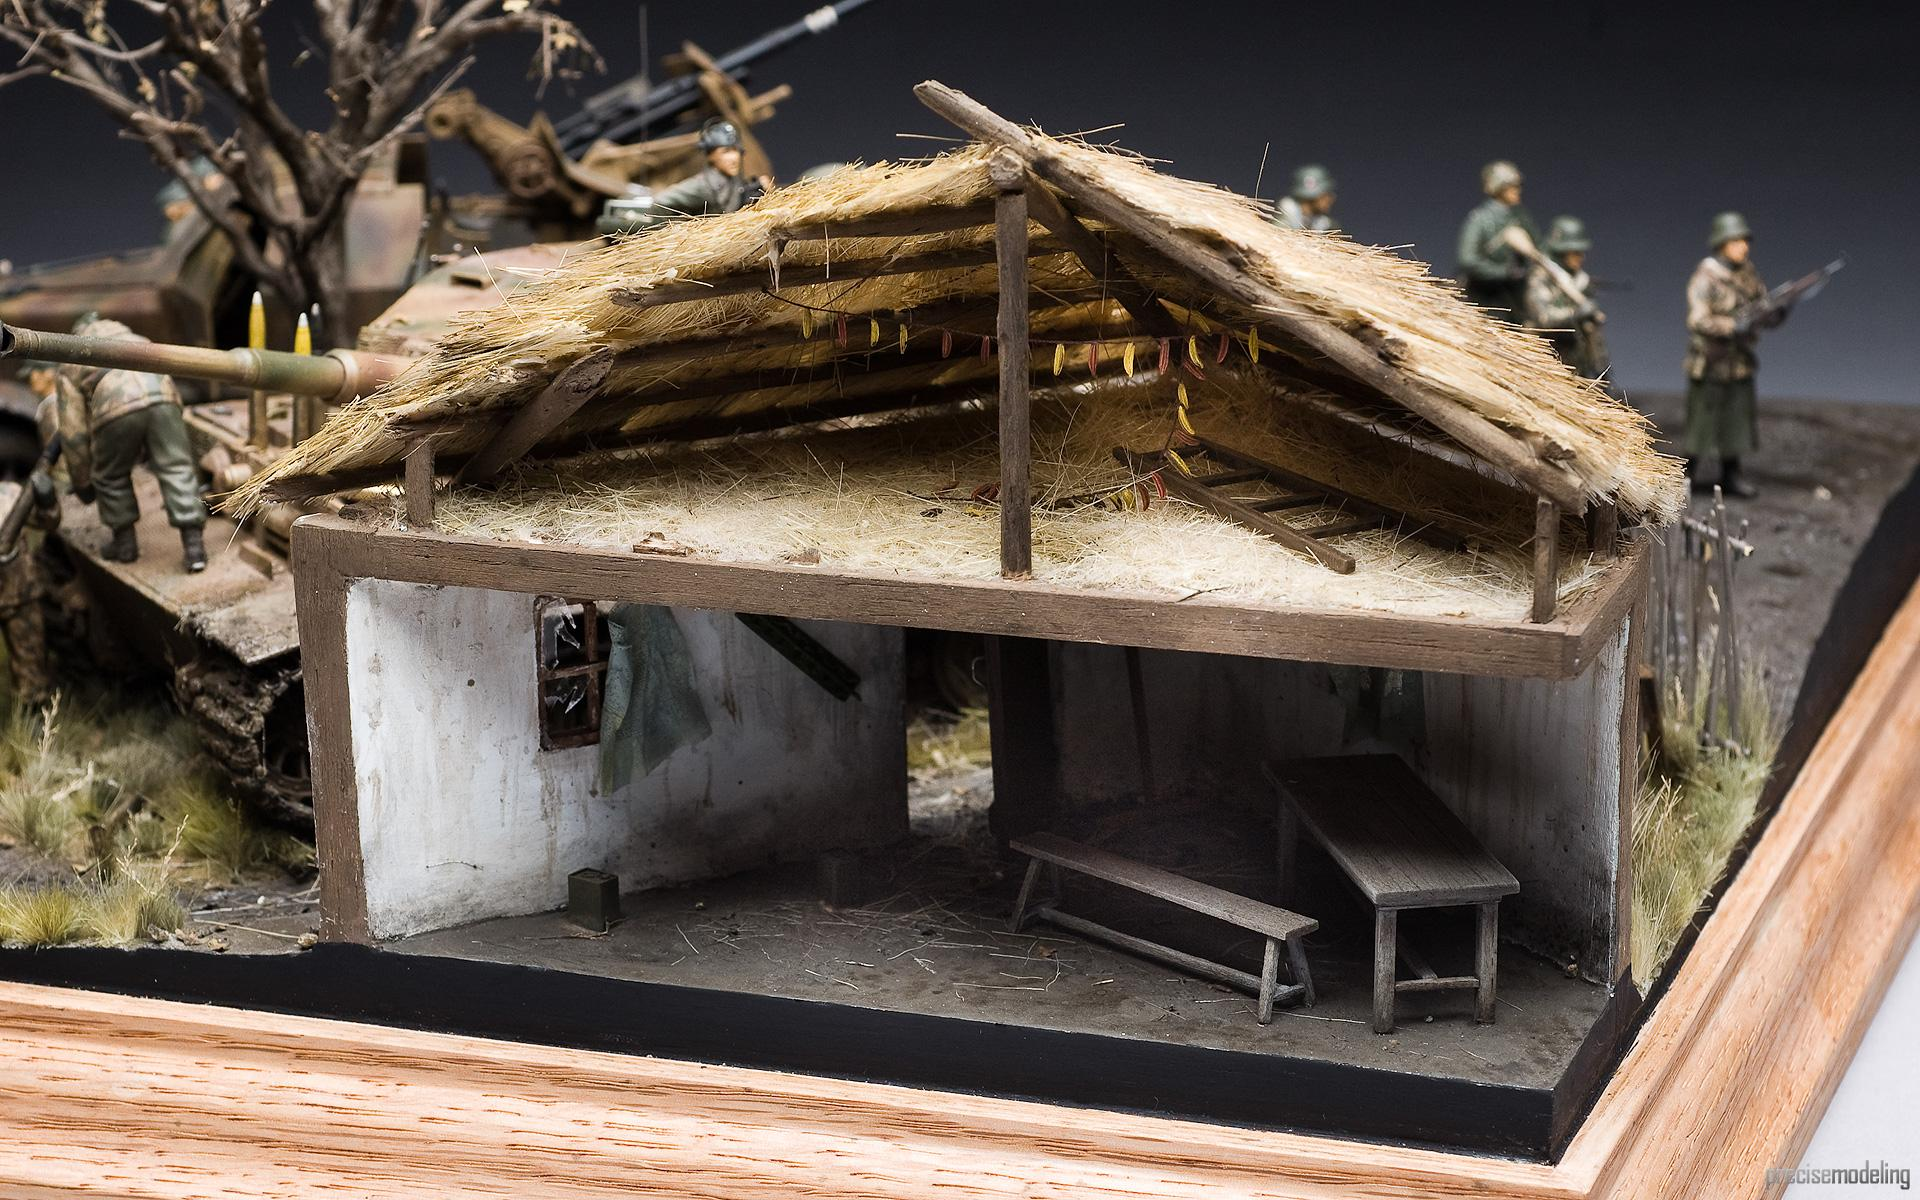 French European House Plans Life Like Historically Correct Wwii Diorama I Like To